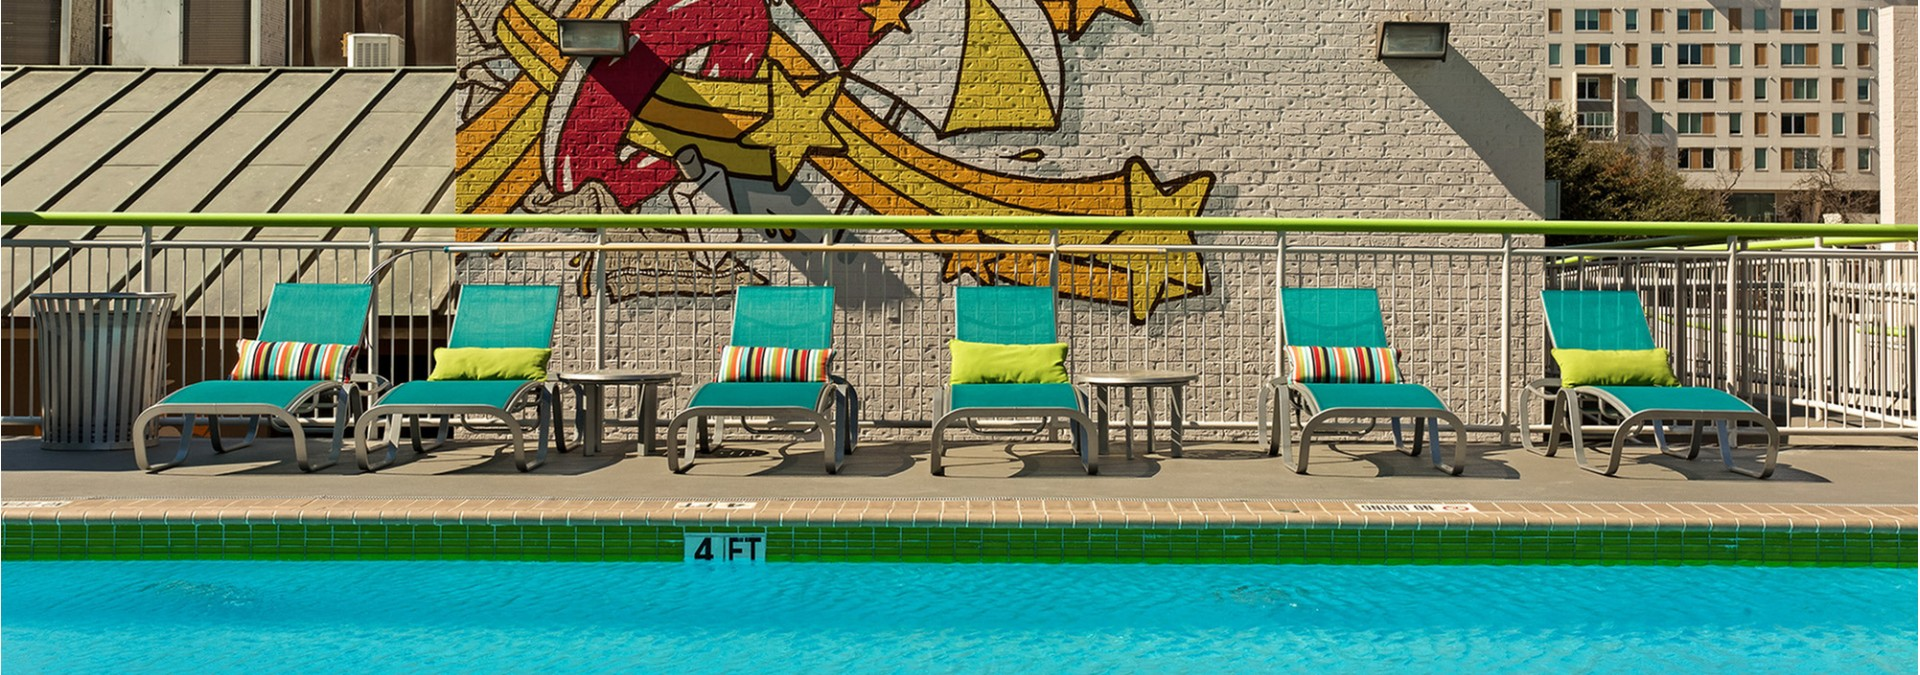 Swimming Pool at Dobie Twenty21 Student Spaces 2